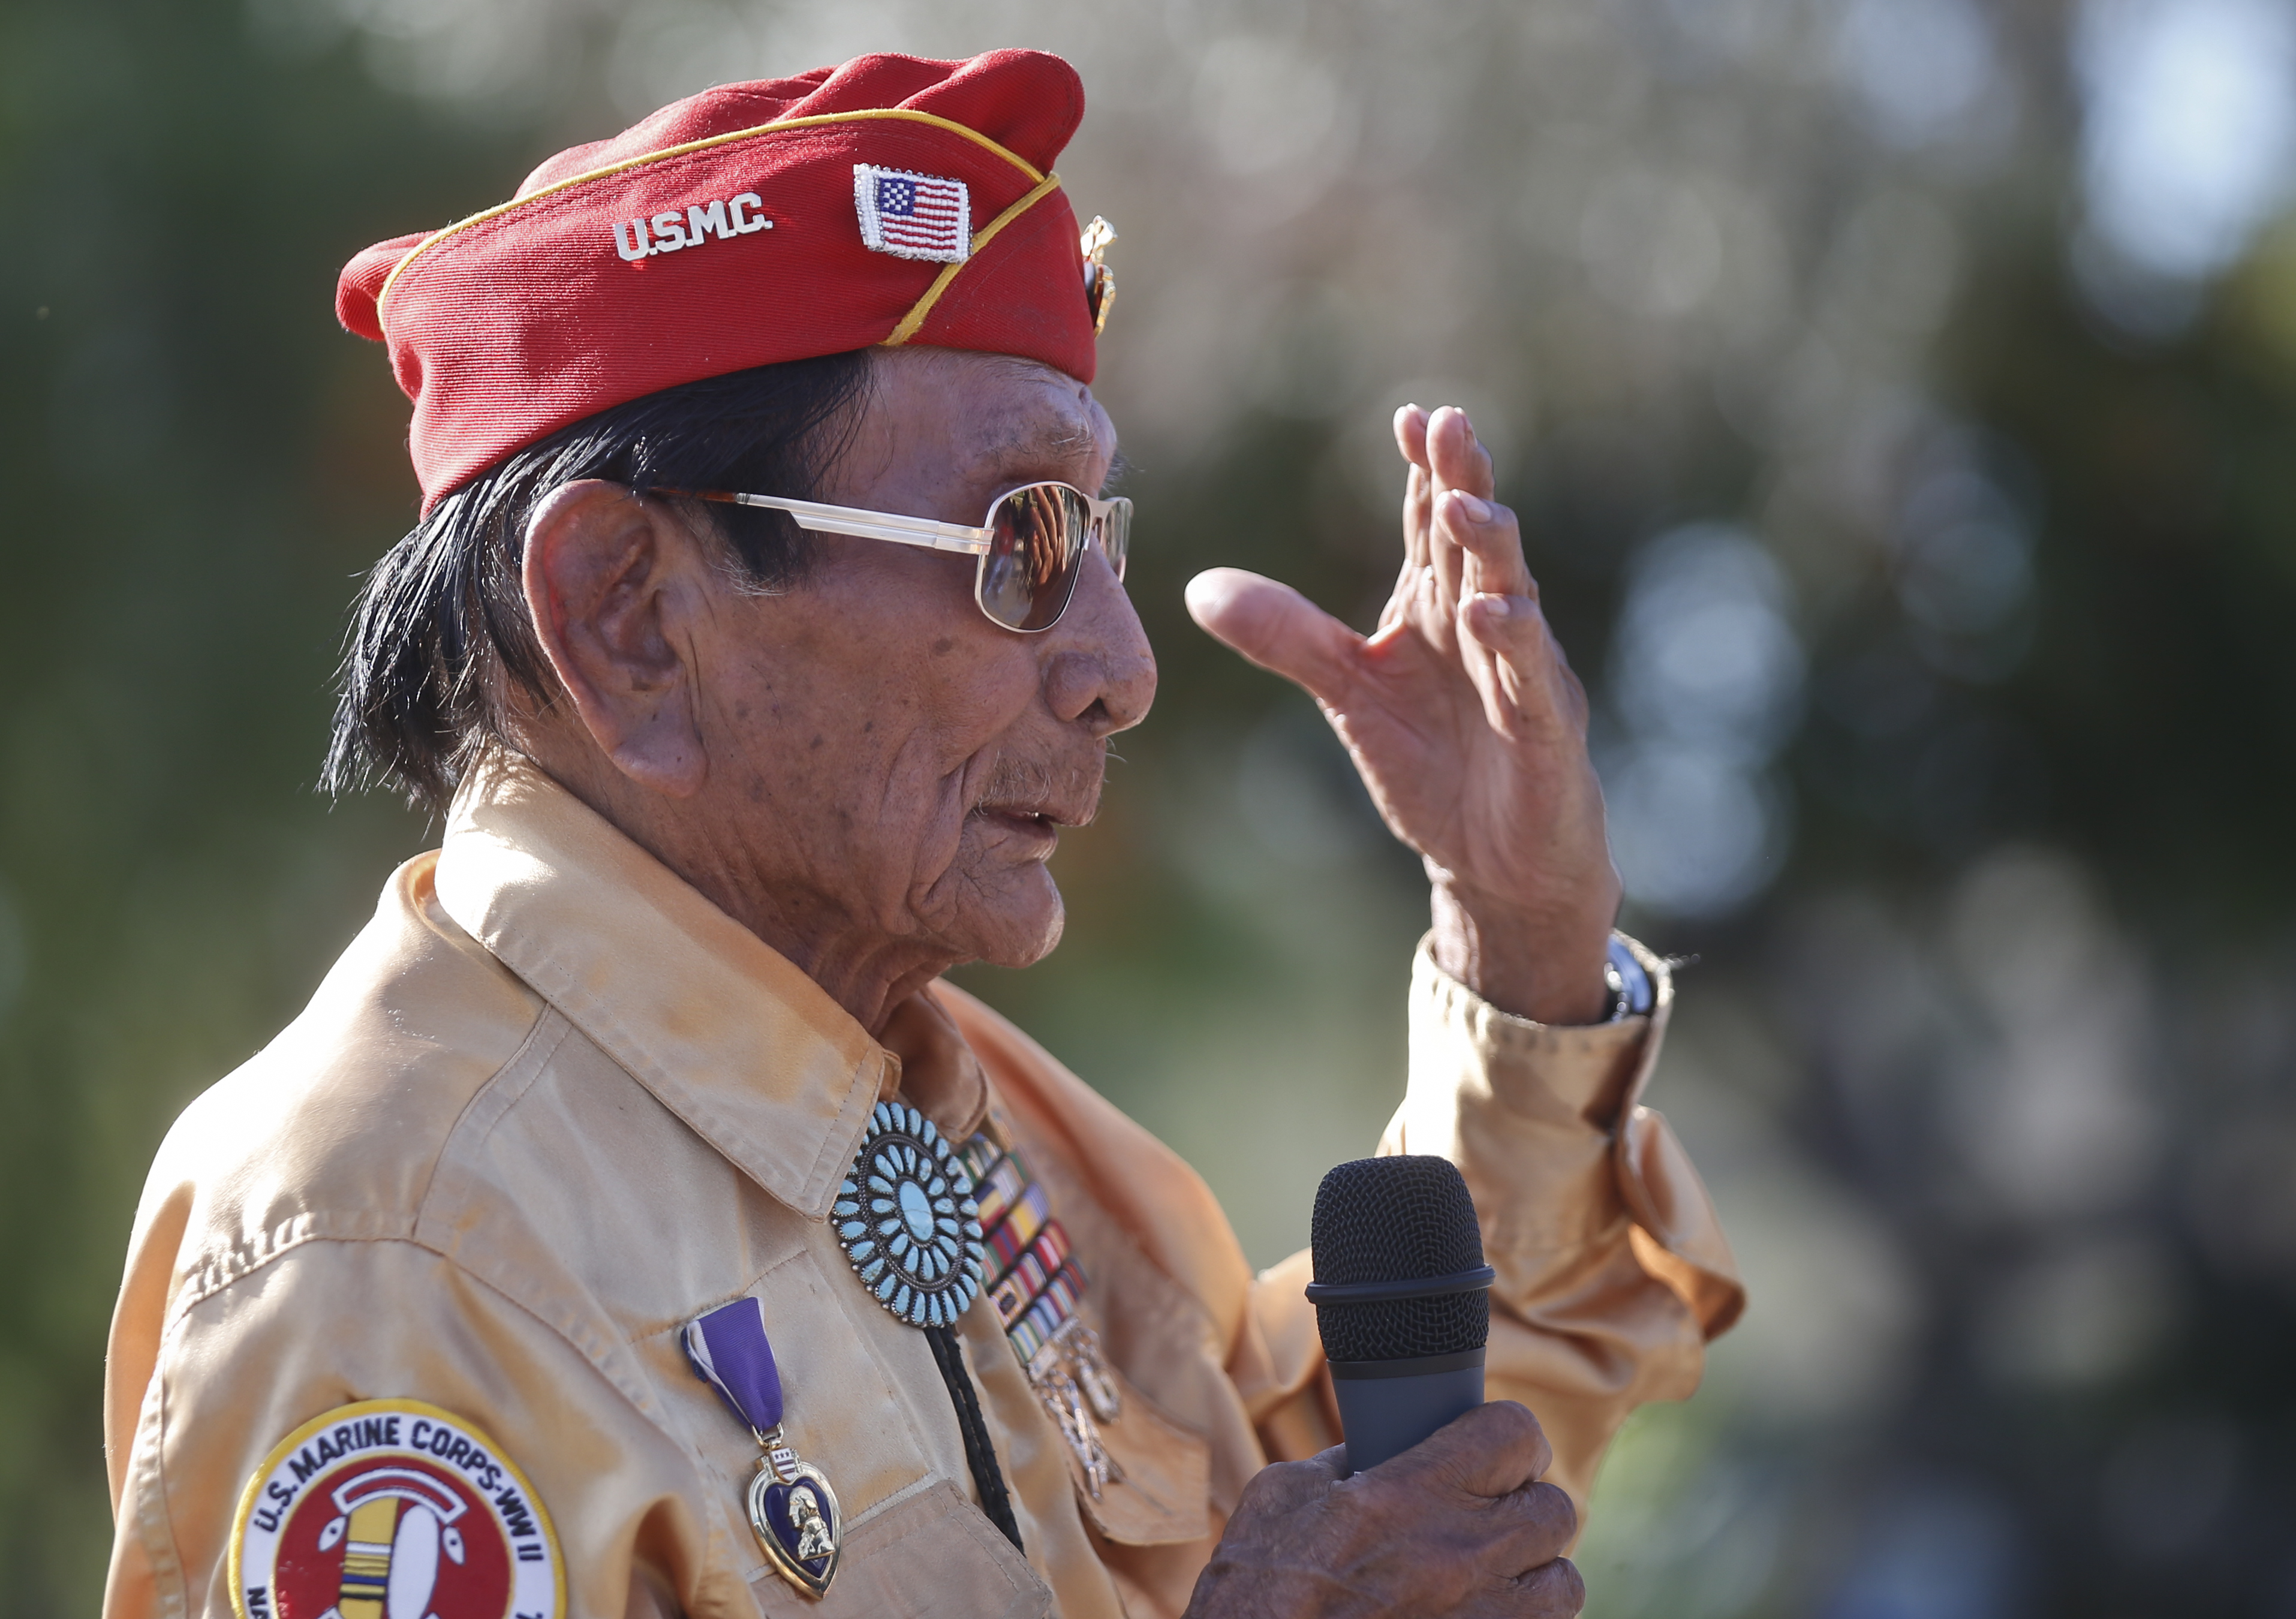 navajo code talker to discuss windtalkers movie at stars and